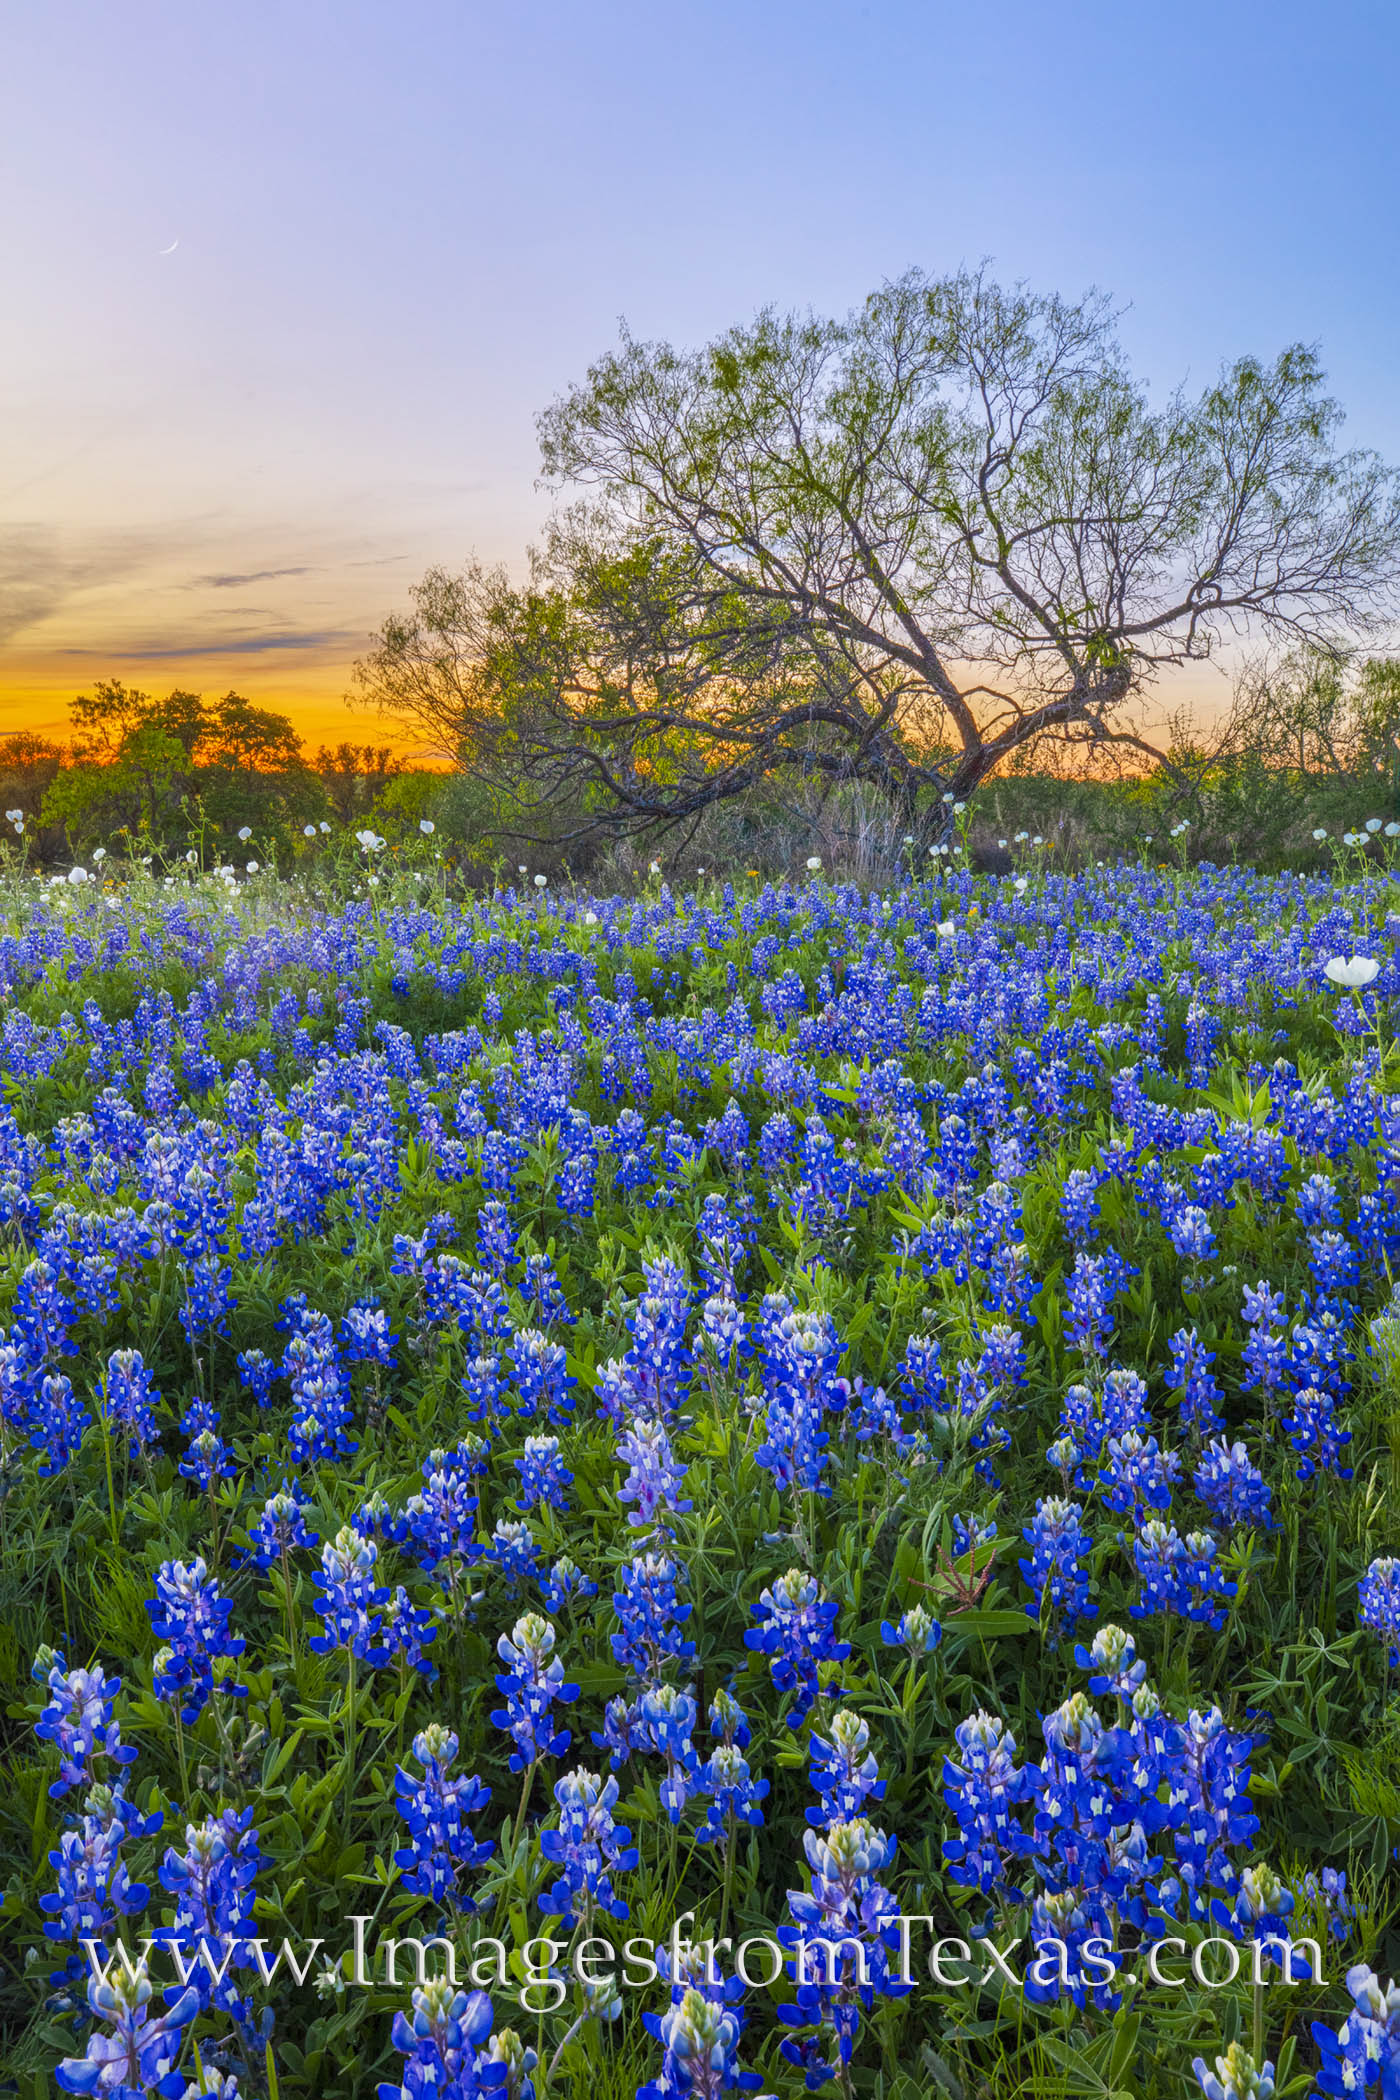 bluebonnets, sunset, country roads, hill country, spring, wildflowers, landscapes, beautiful, photo